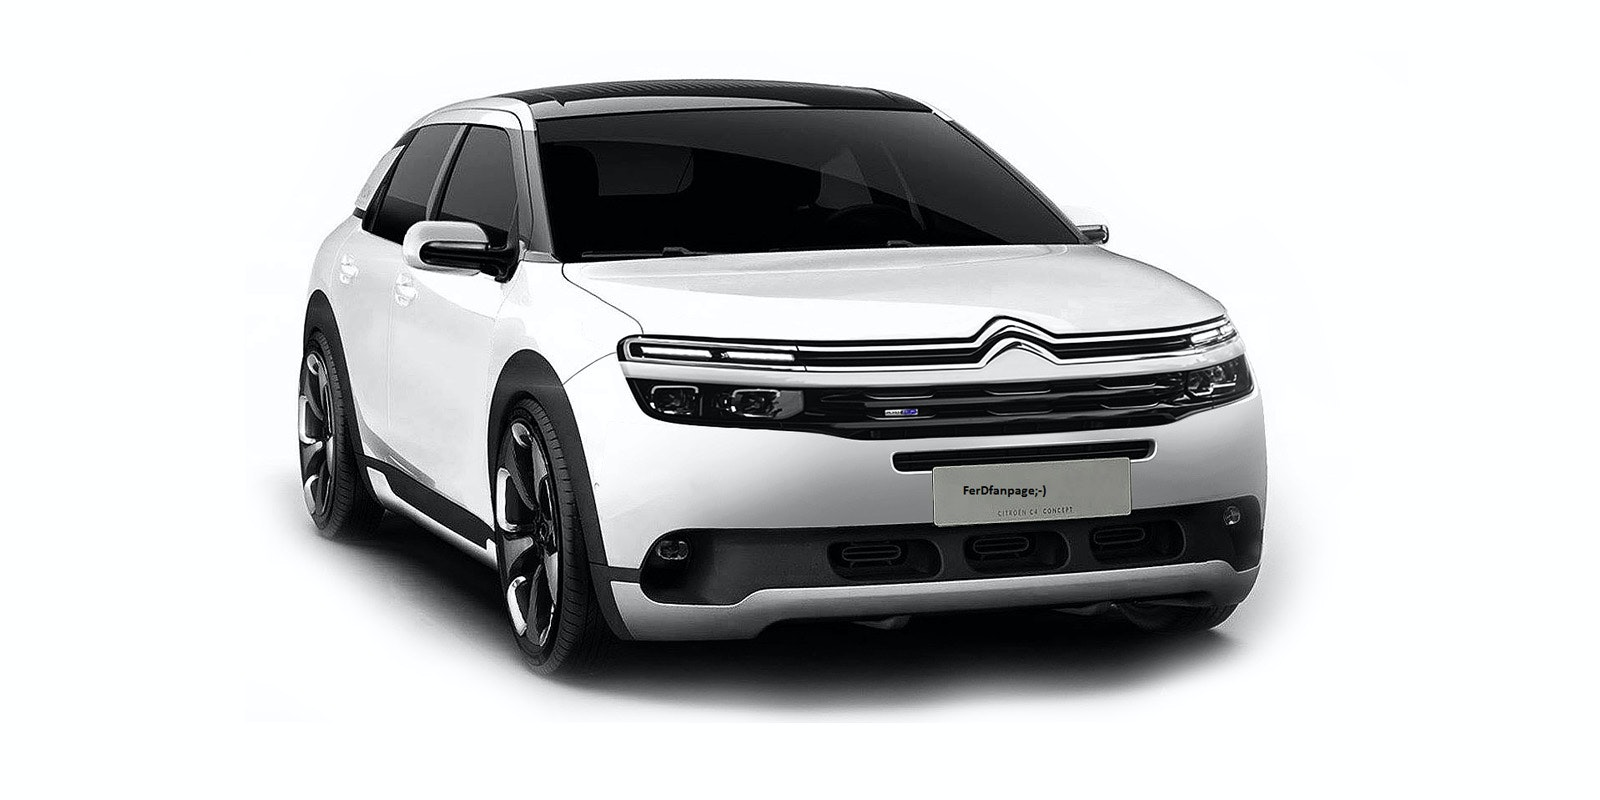 2018 Citroen C4 Price Specs And Release Date Carwow